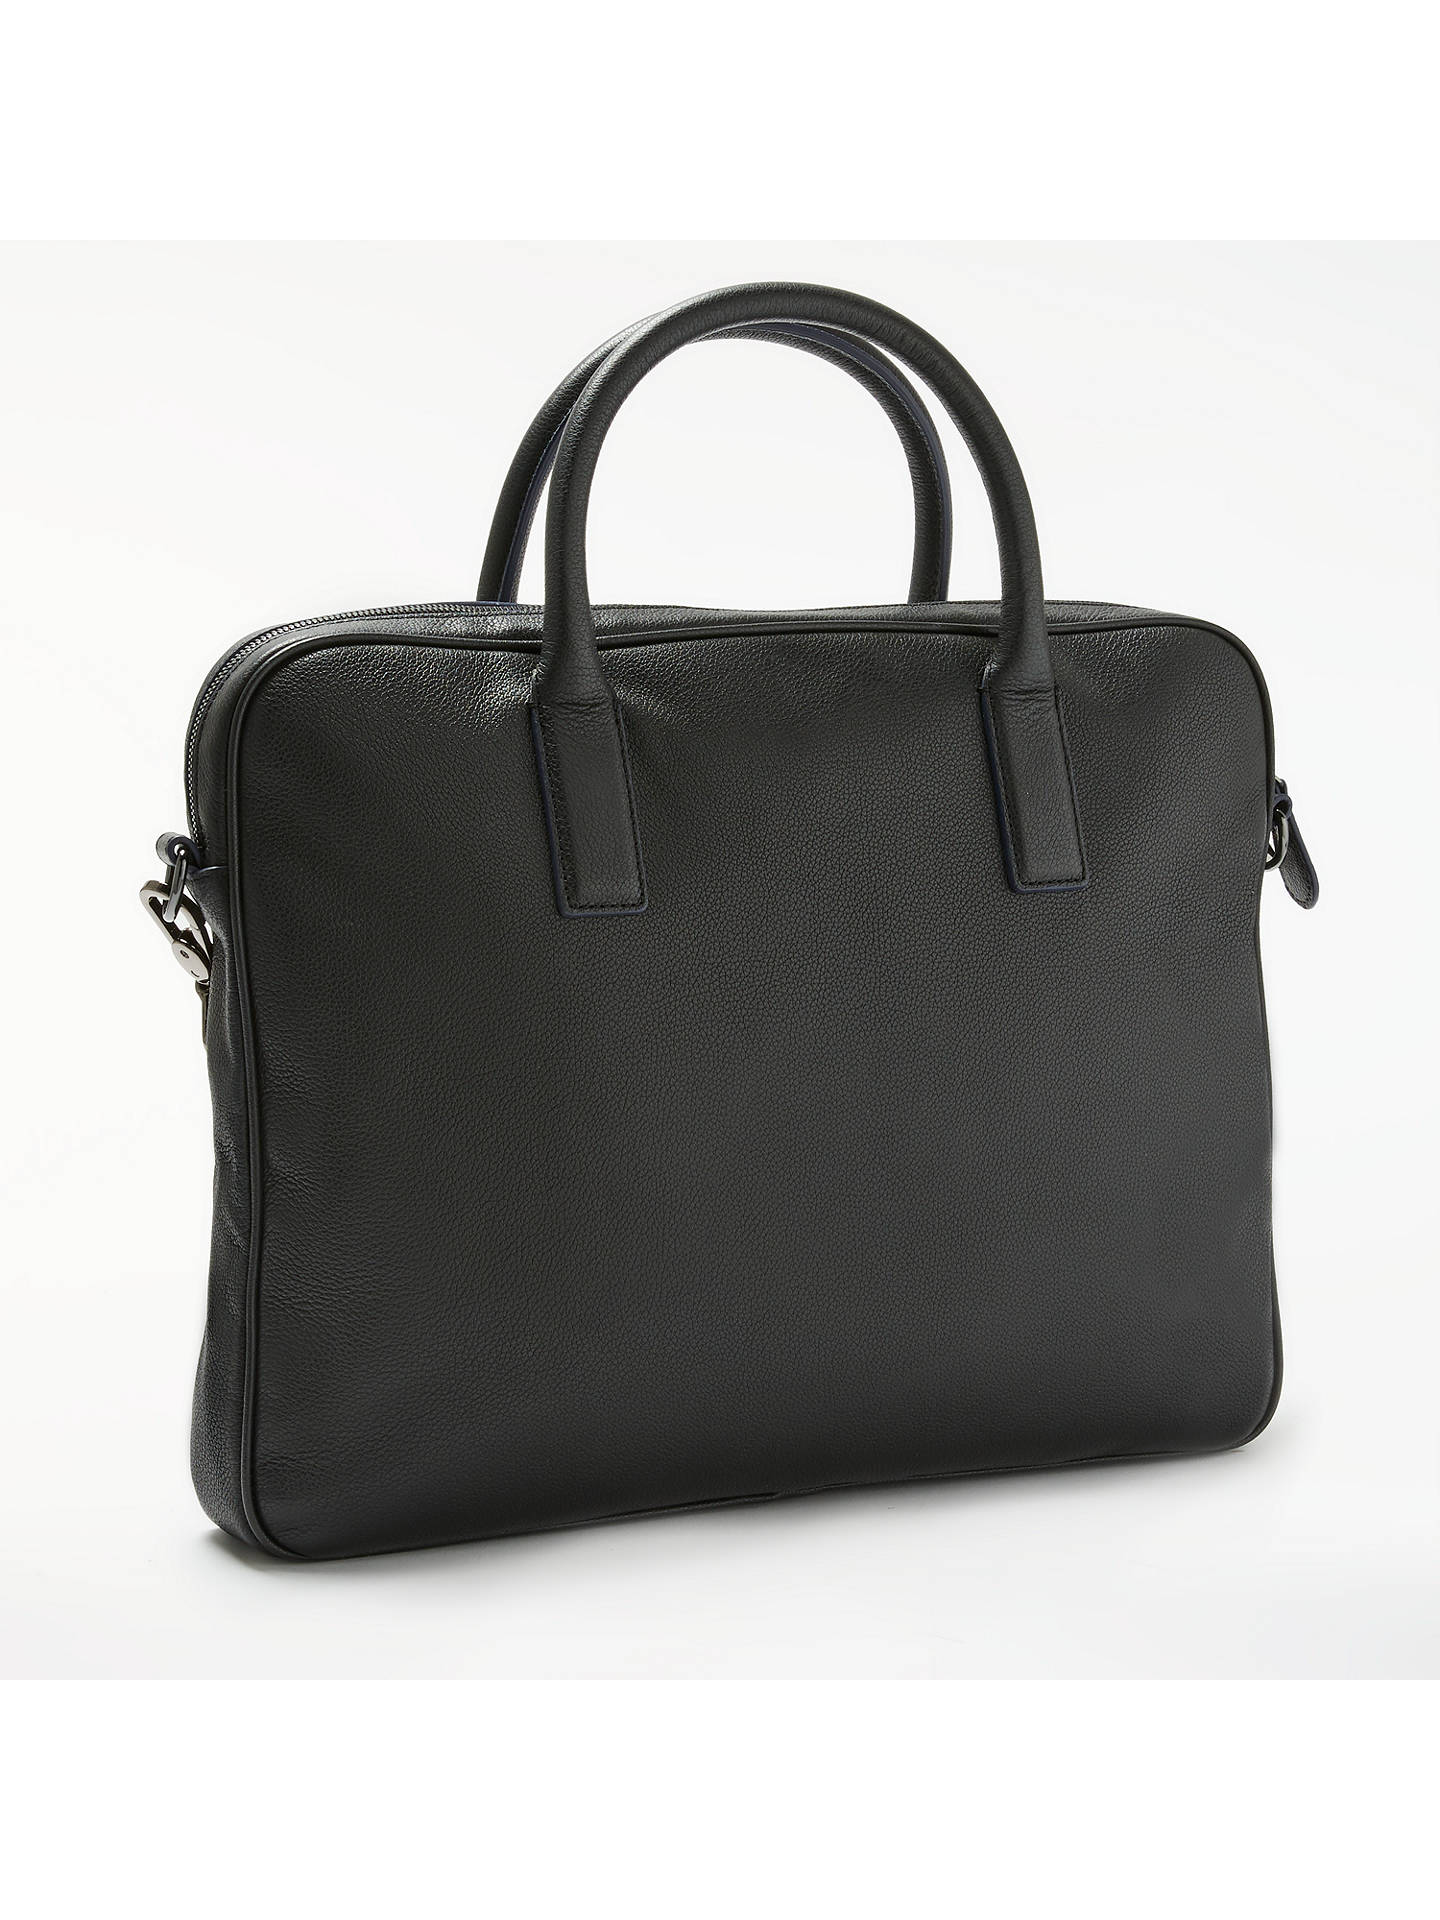 c1a46a2670c ... Buy Ted Baker Lowme Leather Document Bag, Black Online at johnlewis.com  ...